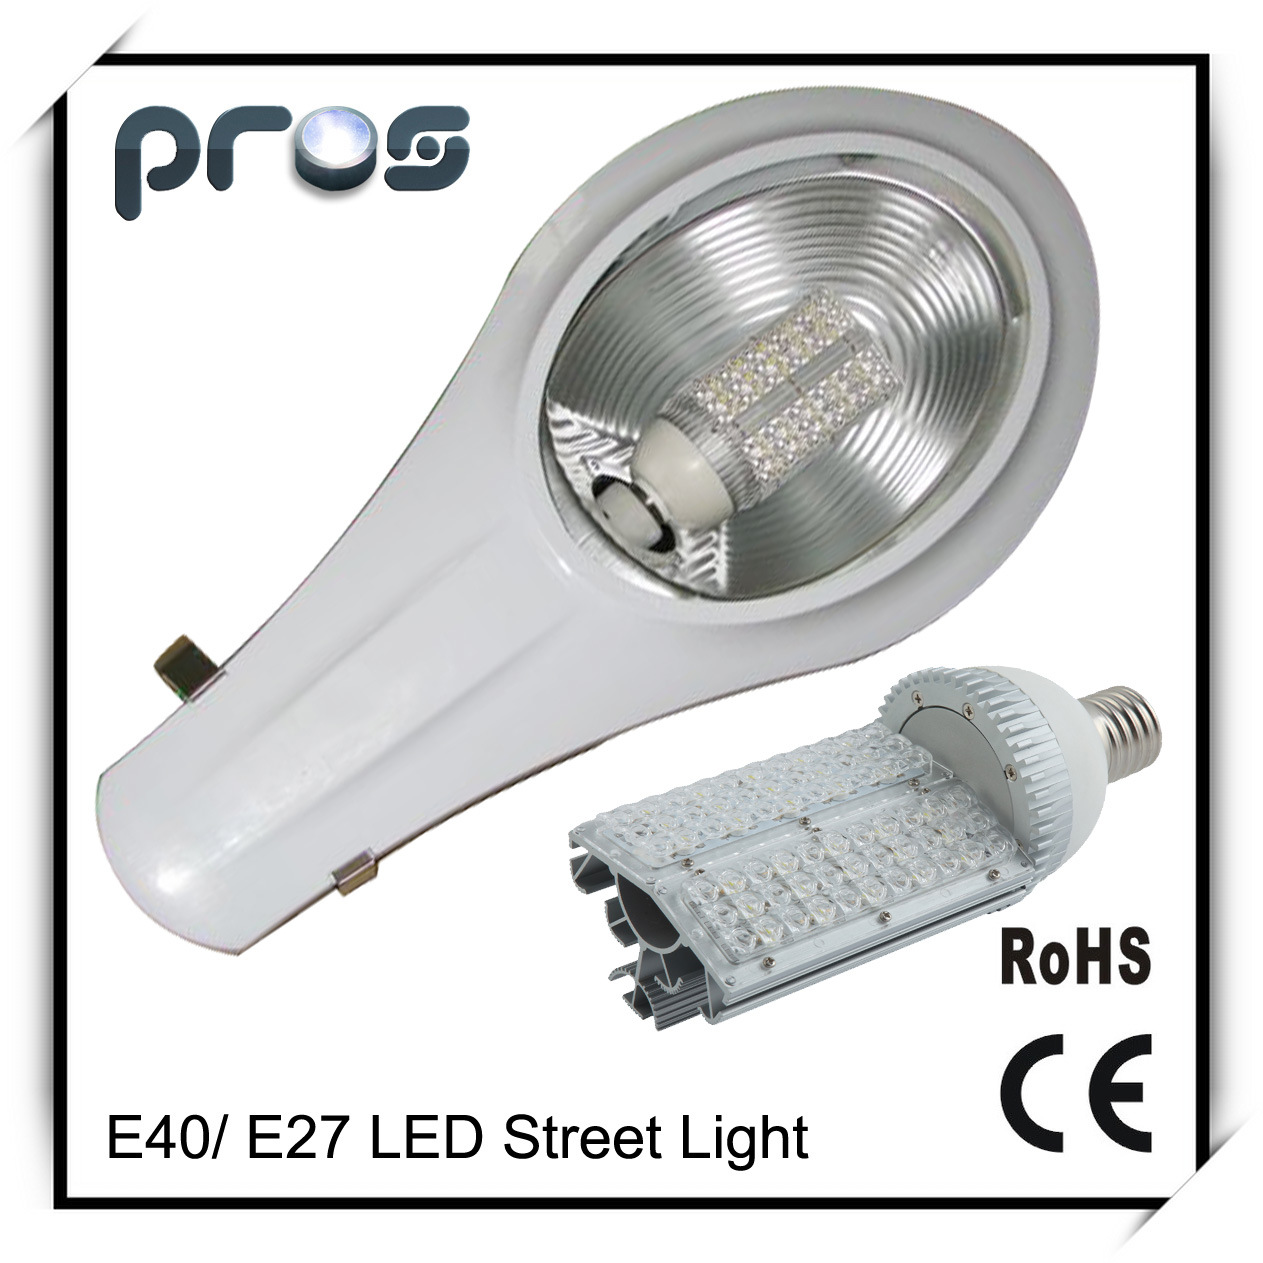 High Power E27 E40 LED Street Light, LED Roadway Lamp